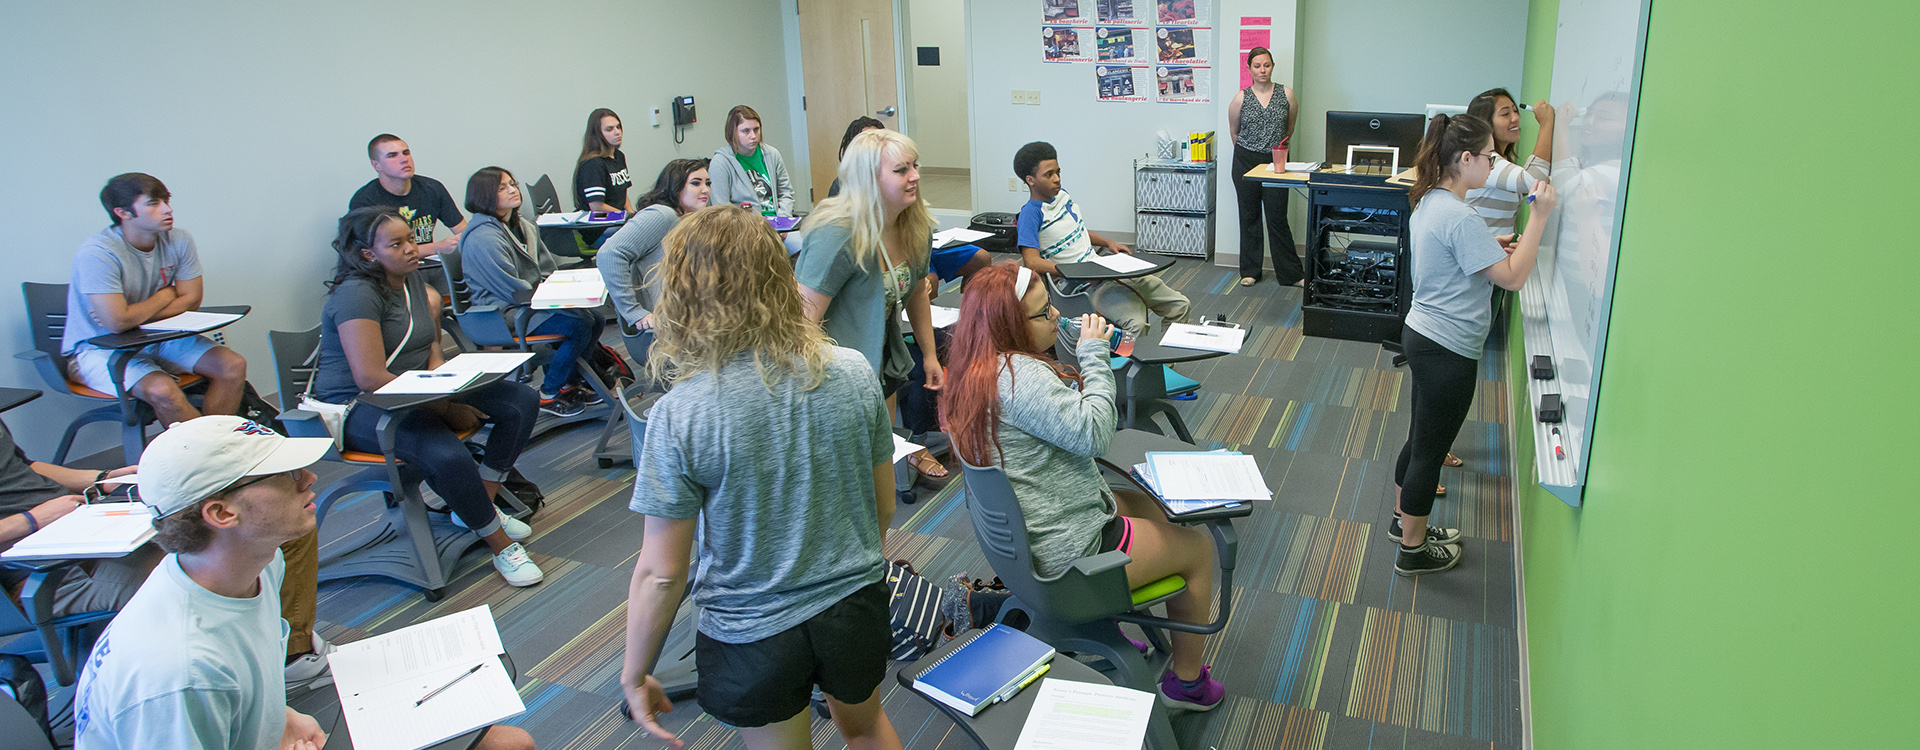 Students in a Vol State class in Gallatin.